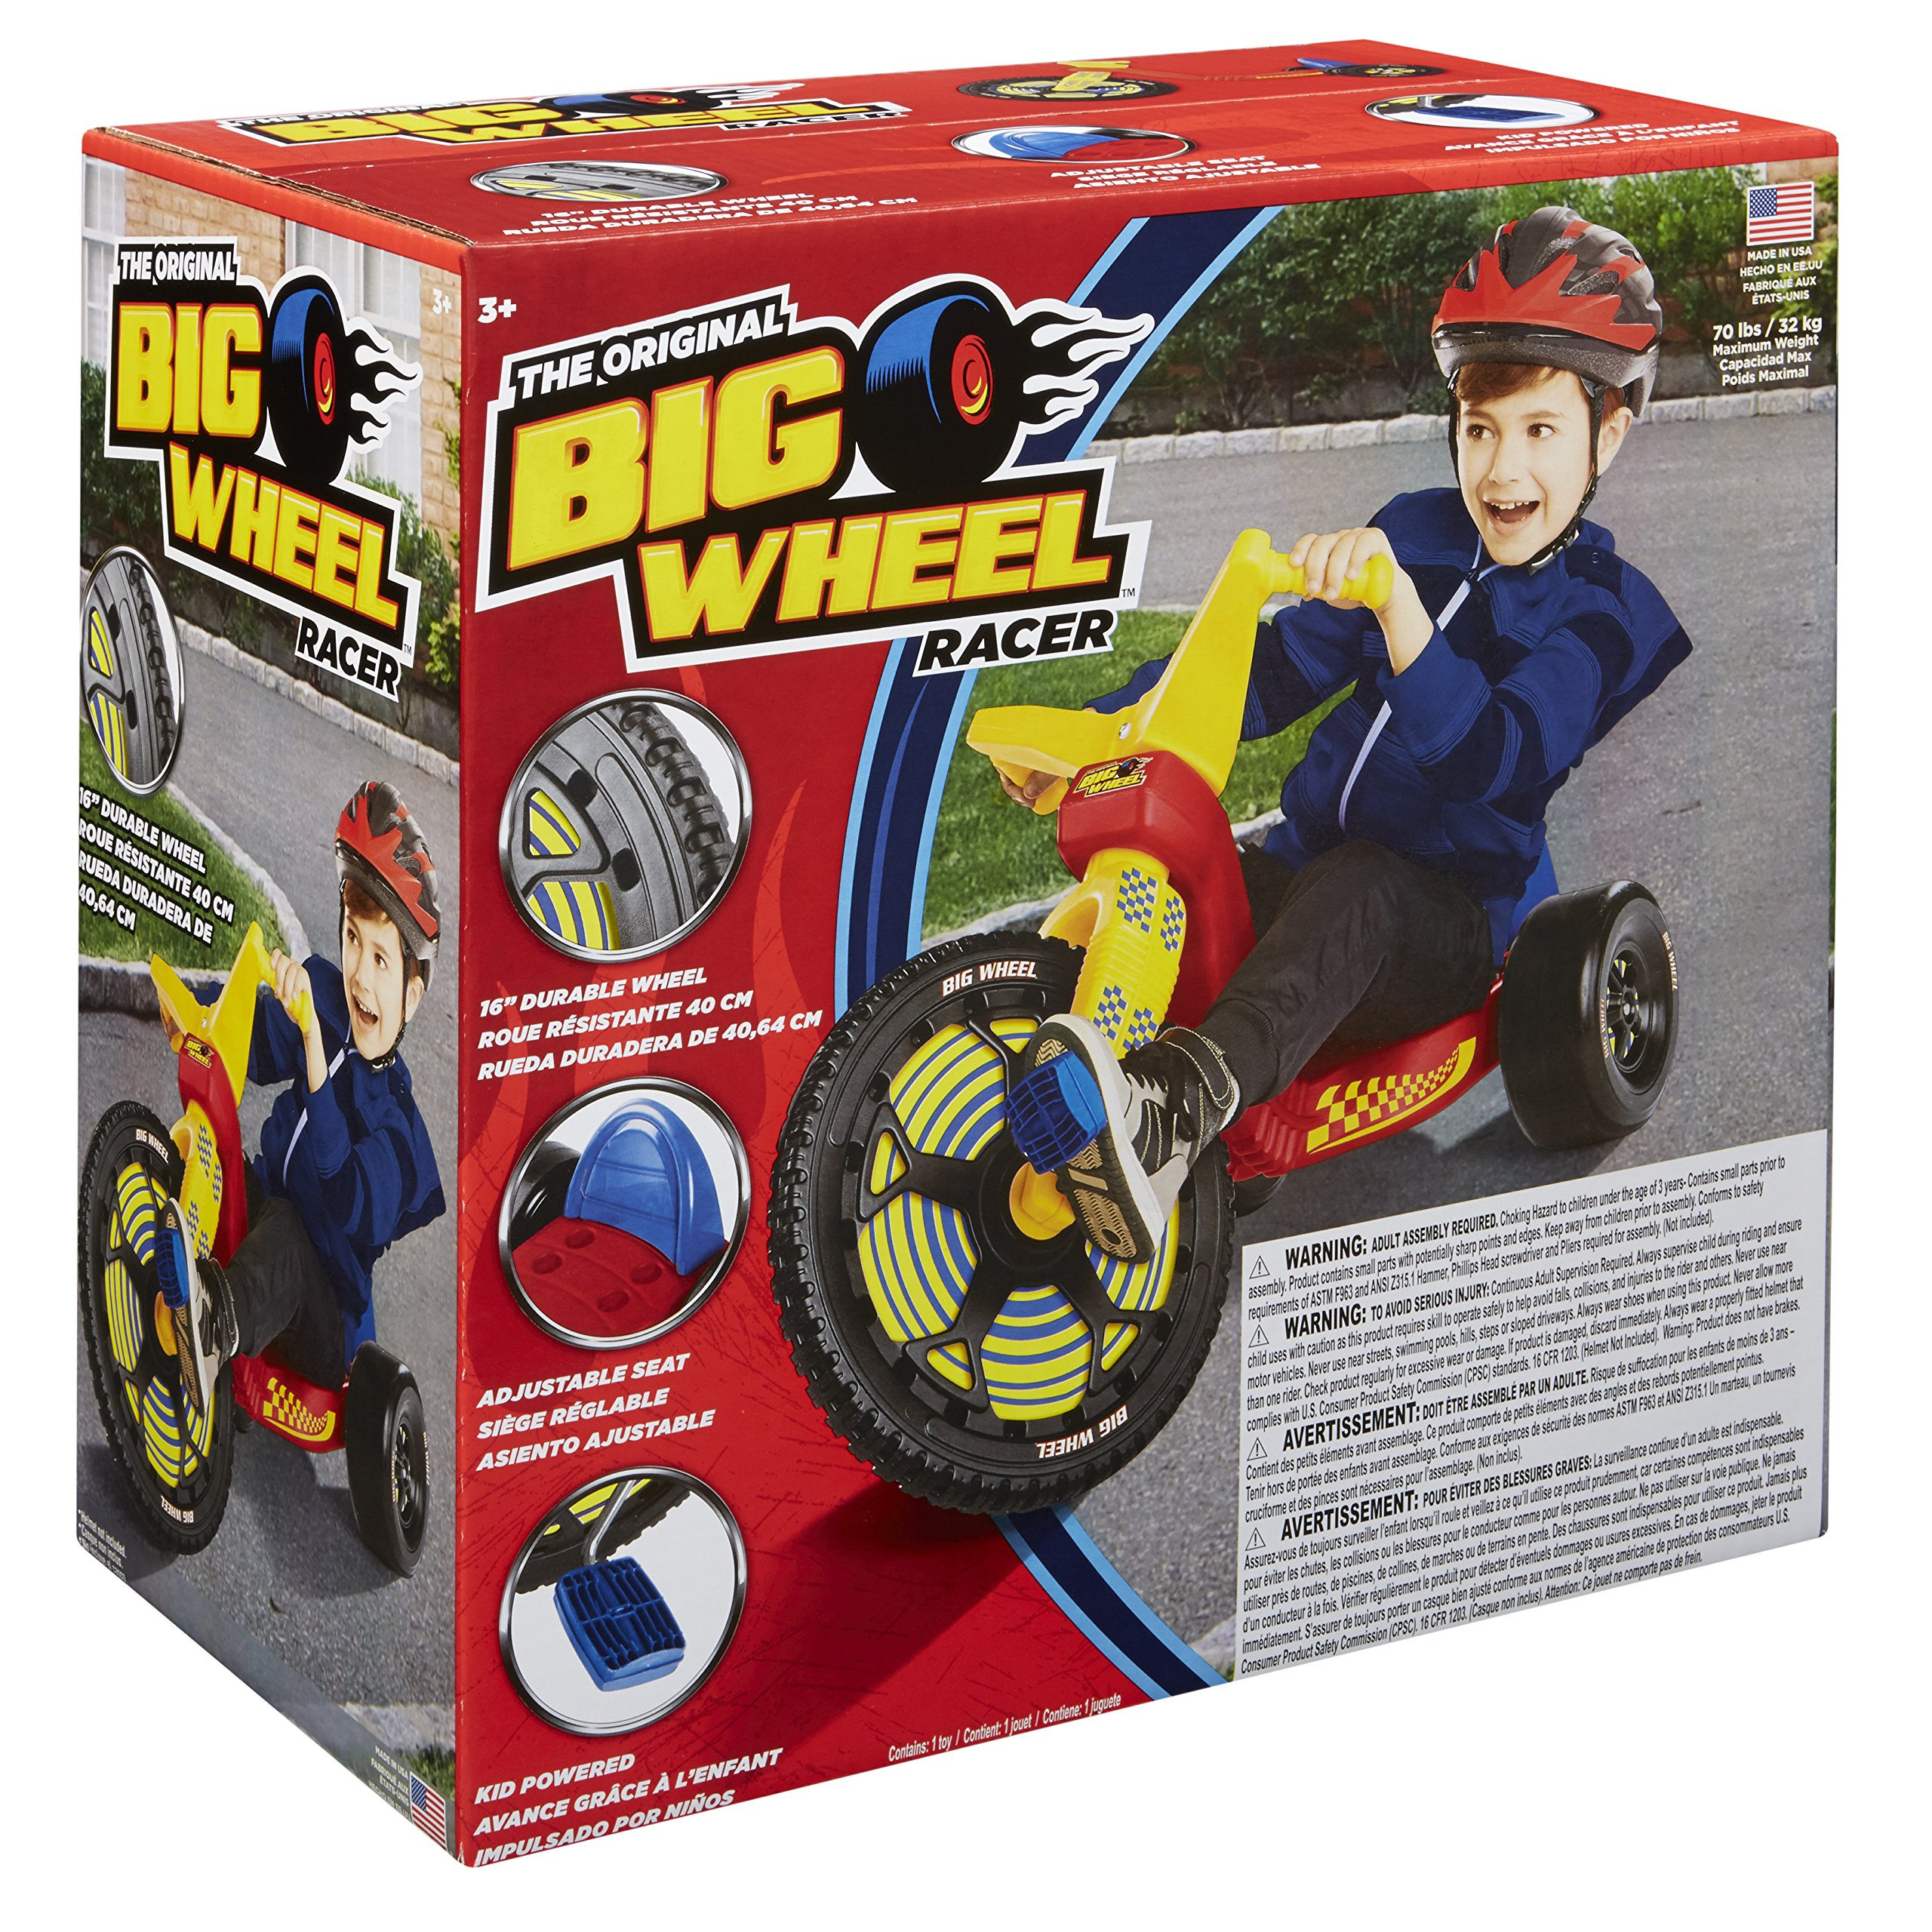 The Original Big Wheel 16in. Racer Classic, Red and Yellow, 13.5-Pound